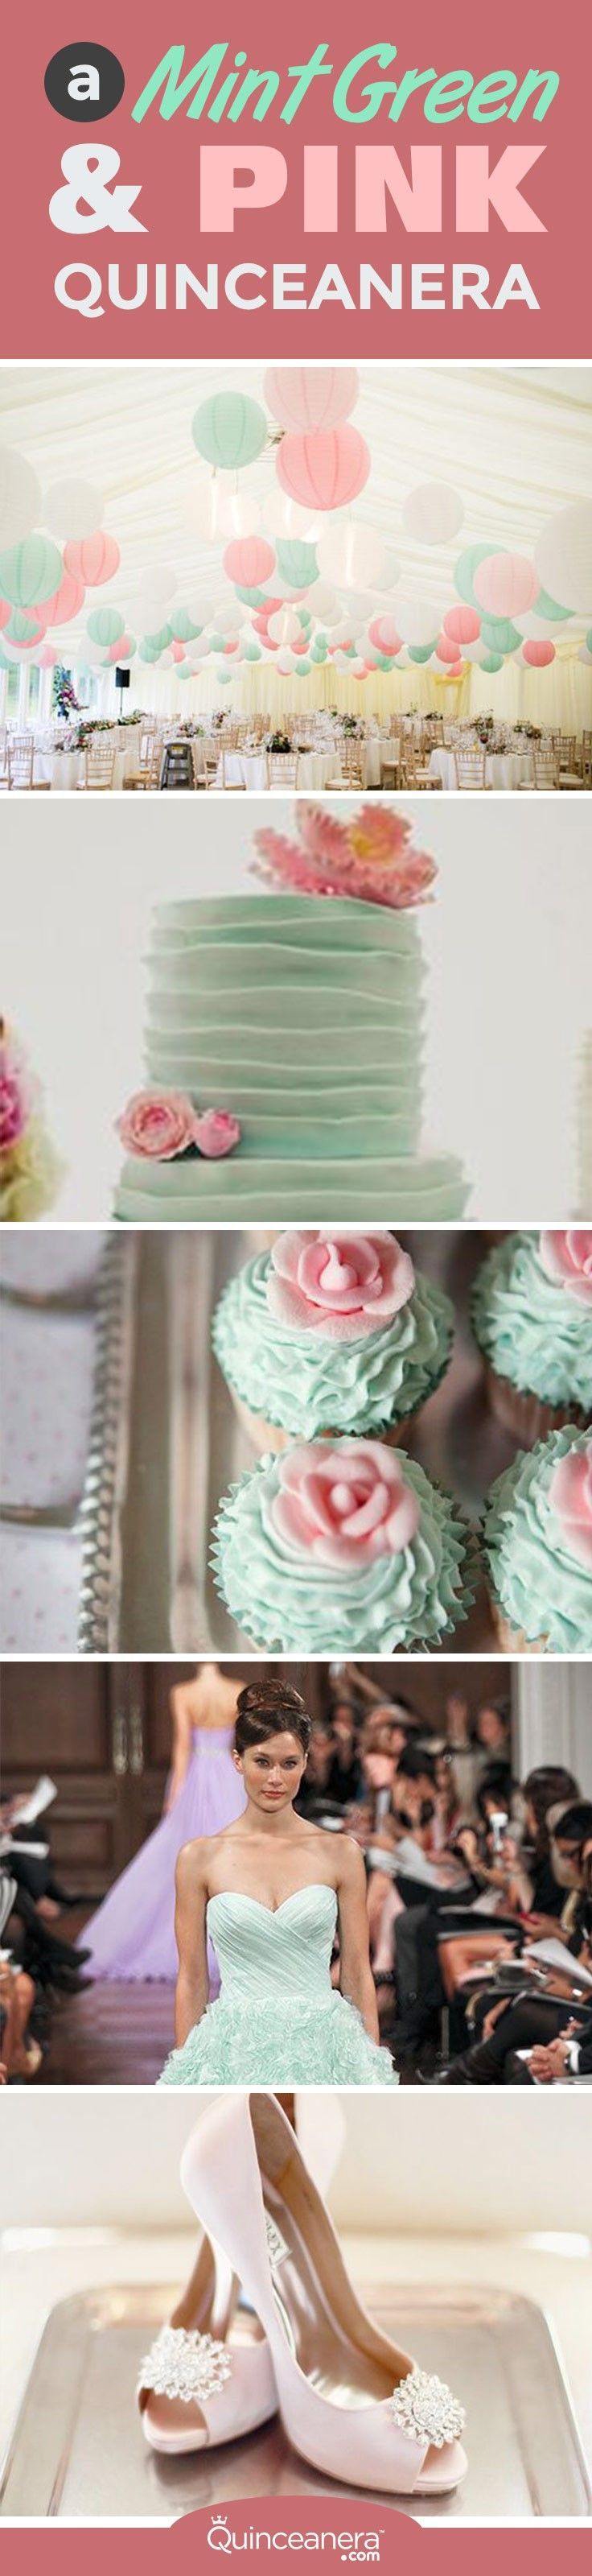 Finding thematic decorations could end up being extremely expensive while a color can easily be adapted to suit your Quince budget. - See more at: http://www.quinceanera.com/decorations-themes/mint-green-pink-quinceanera/#sthash.U5FRy0jX.dpuf